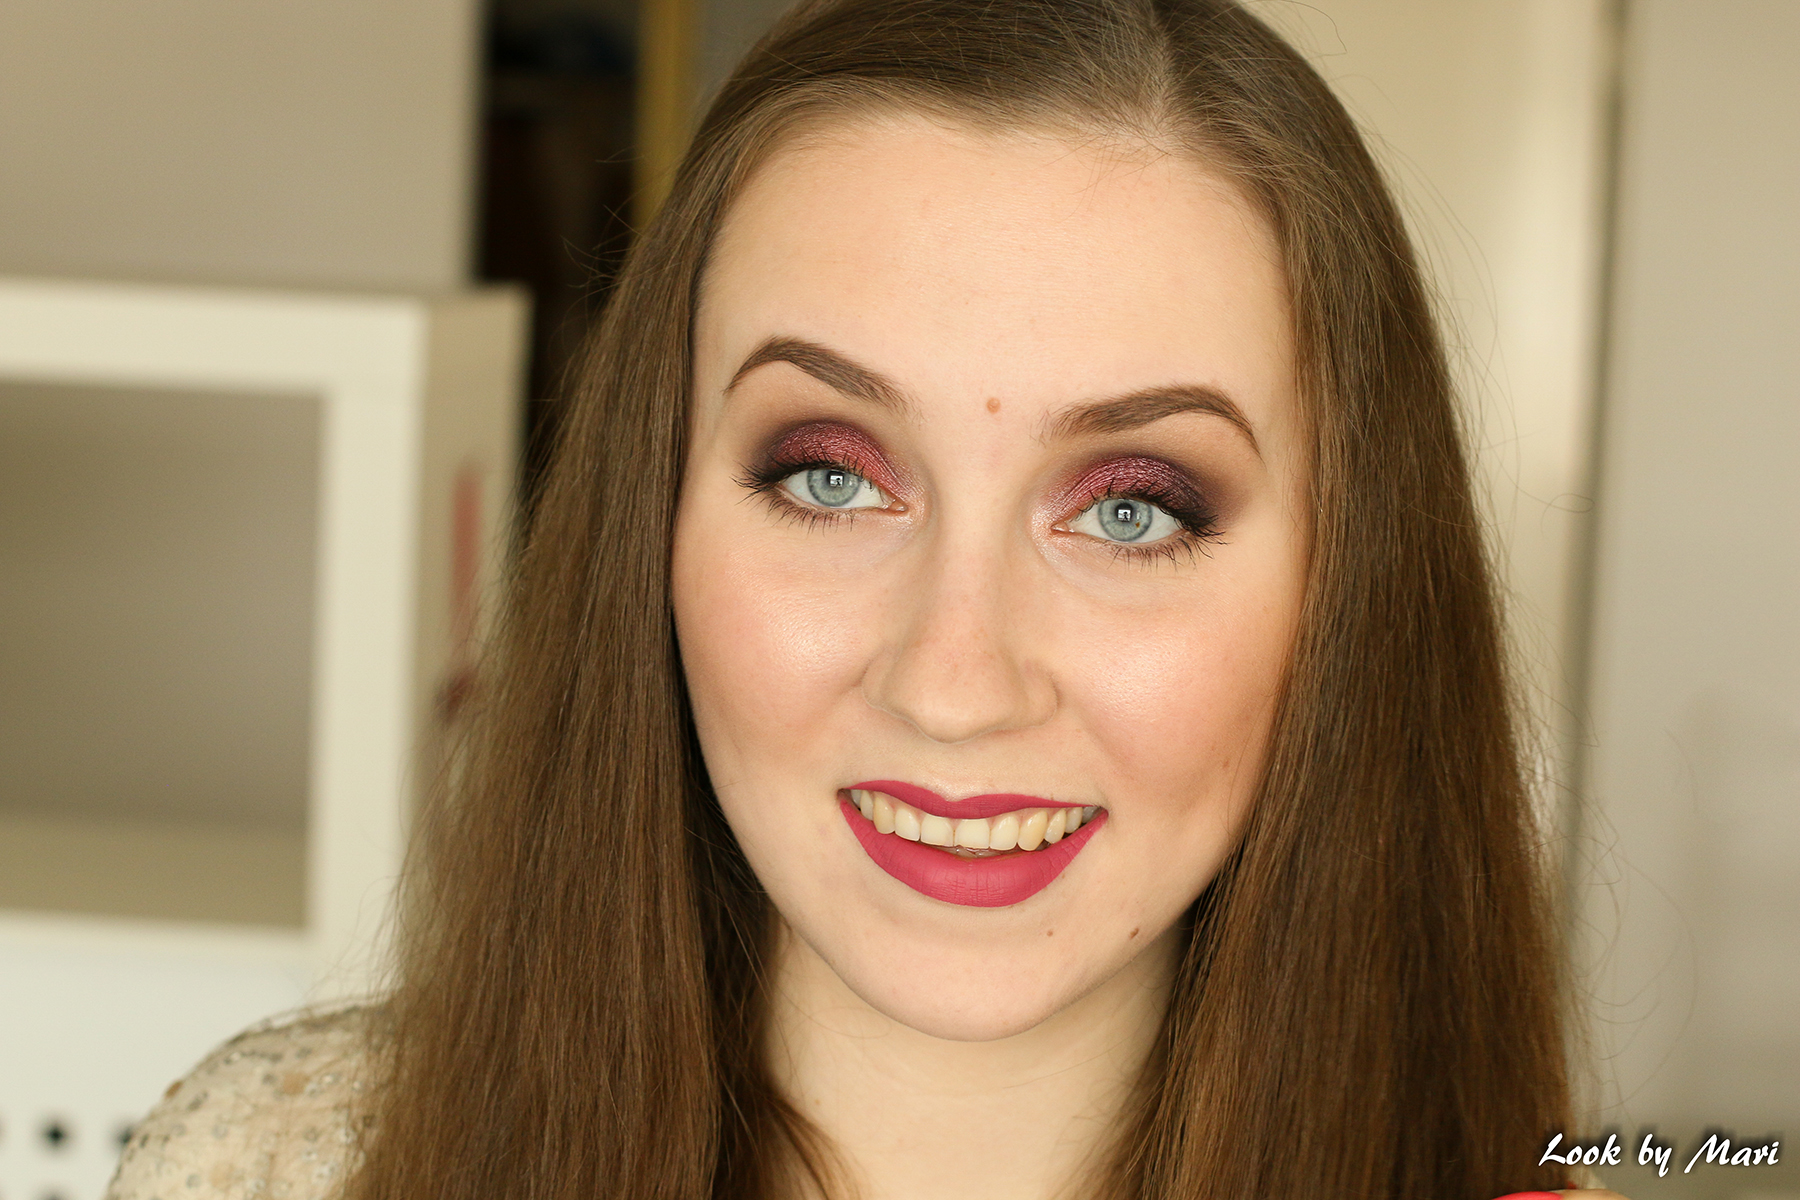 13 kat von d everlasting liquid lipstick mother review swatches swatch on the lips on fair skin